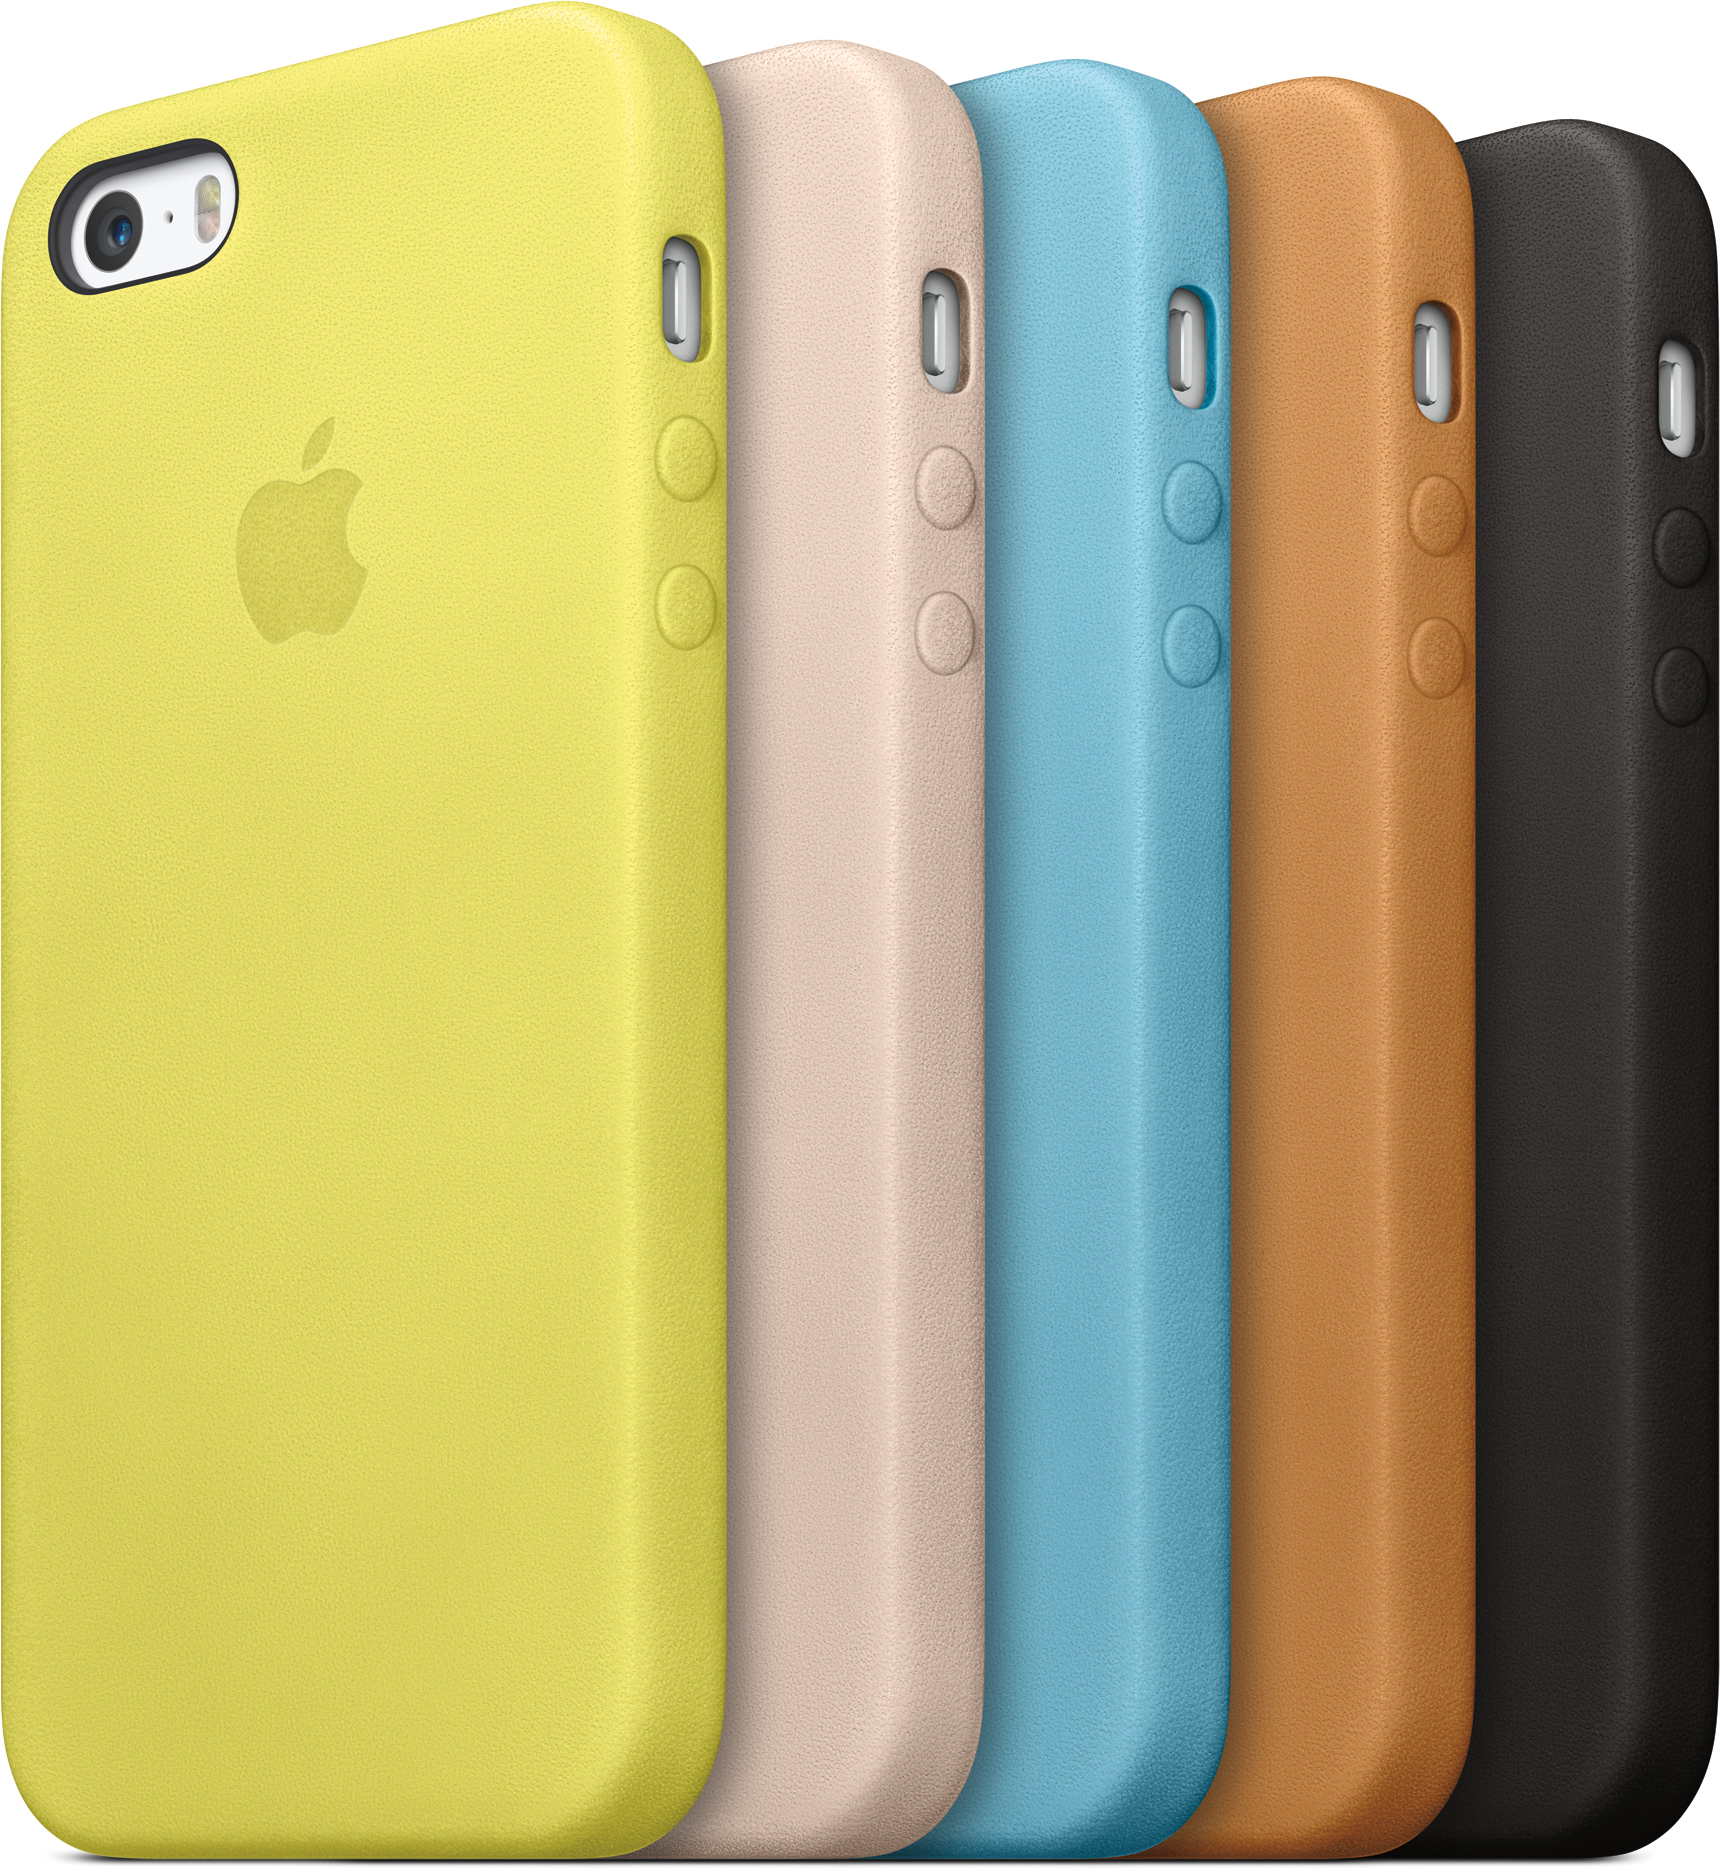 Cases dos iPhones 5s